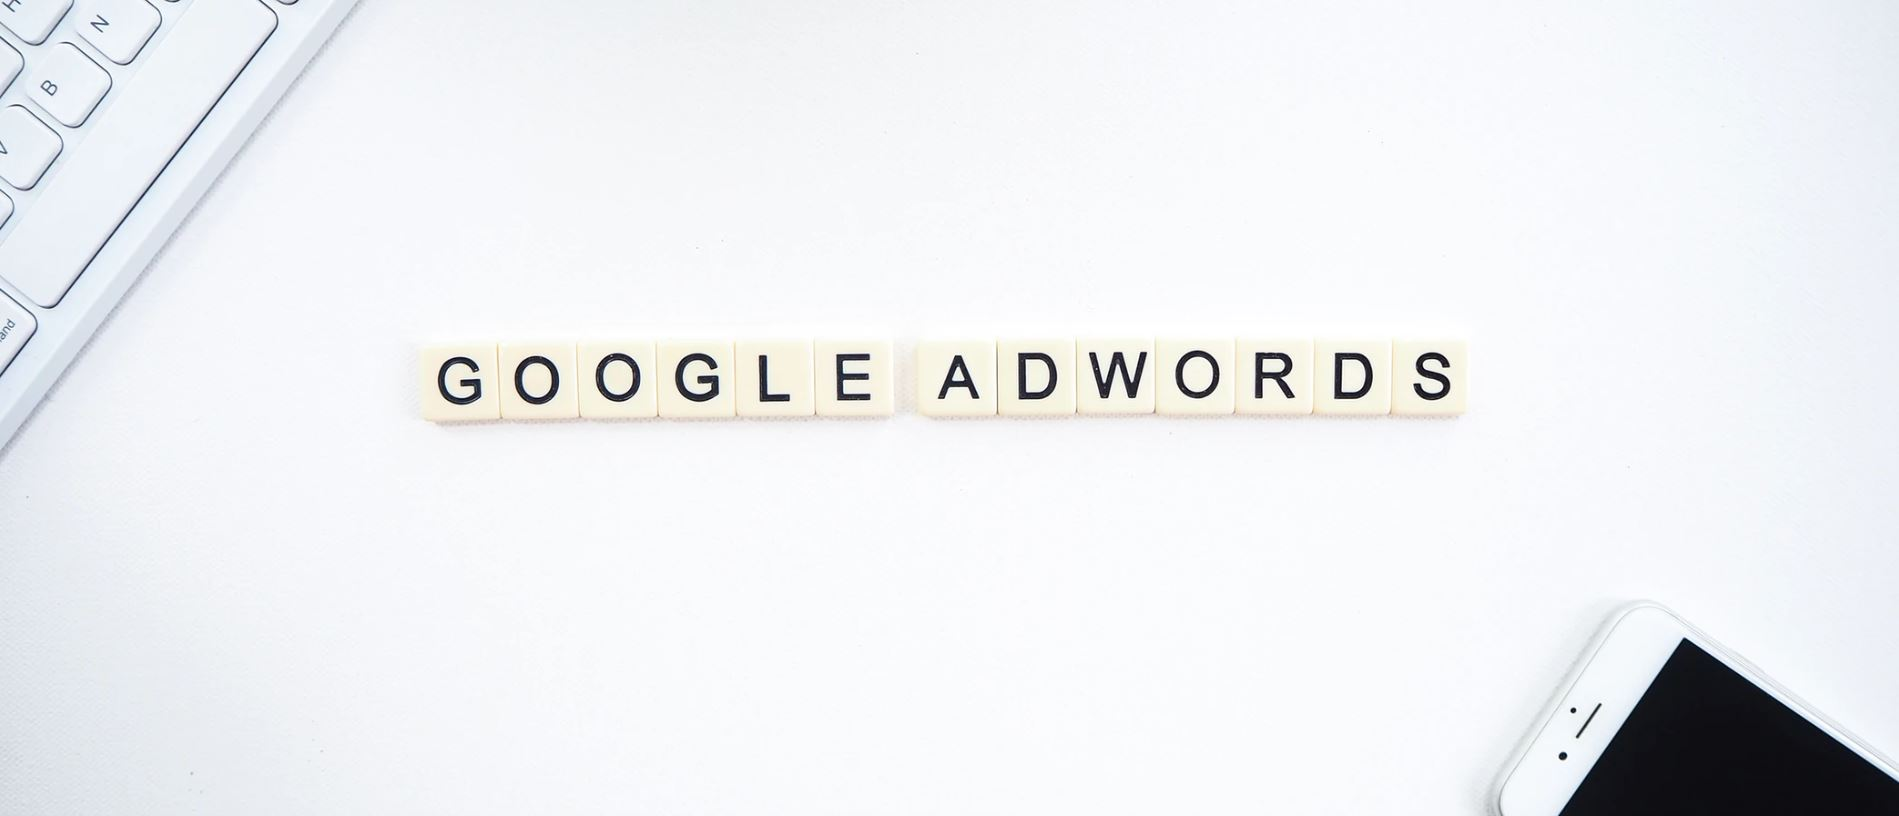 Google AdWords spelled out